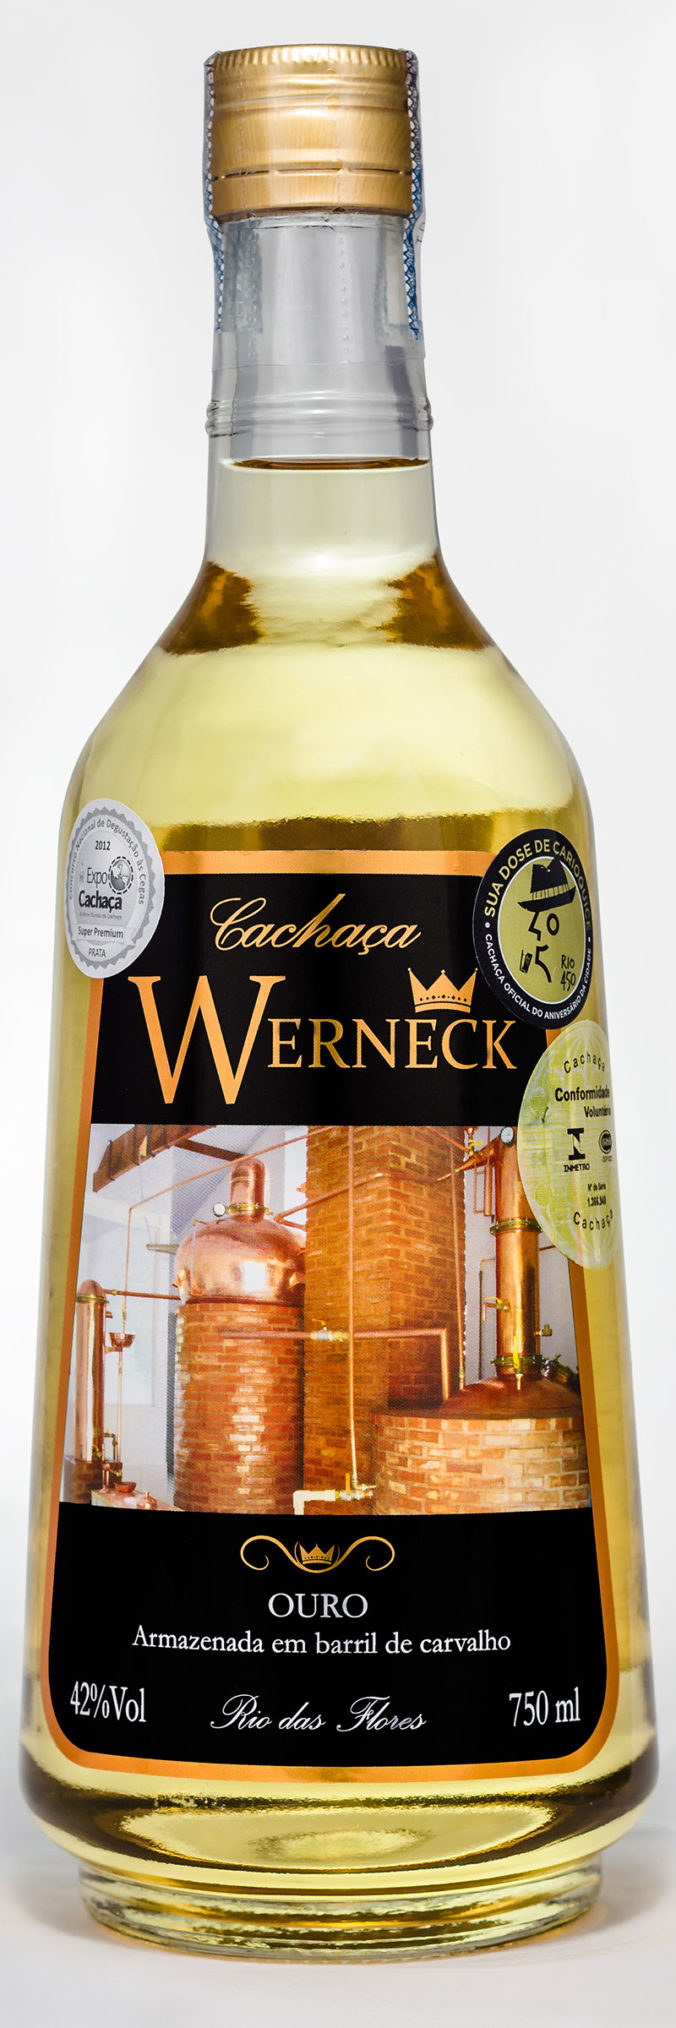 Cachaça Werneck Ouro is a premium cachaça. Ouro (gold) is aged in European oak casks for two years.